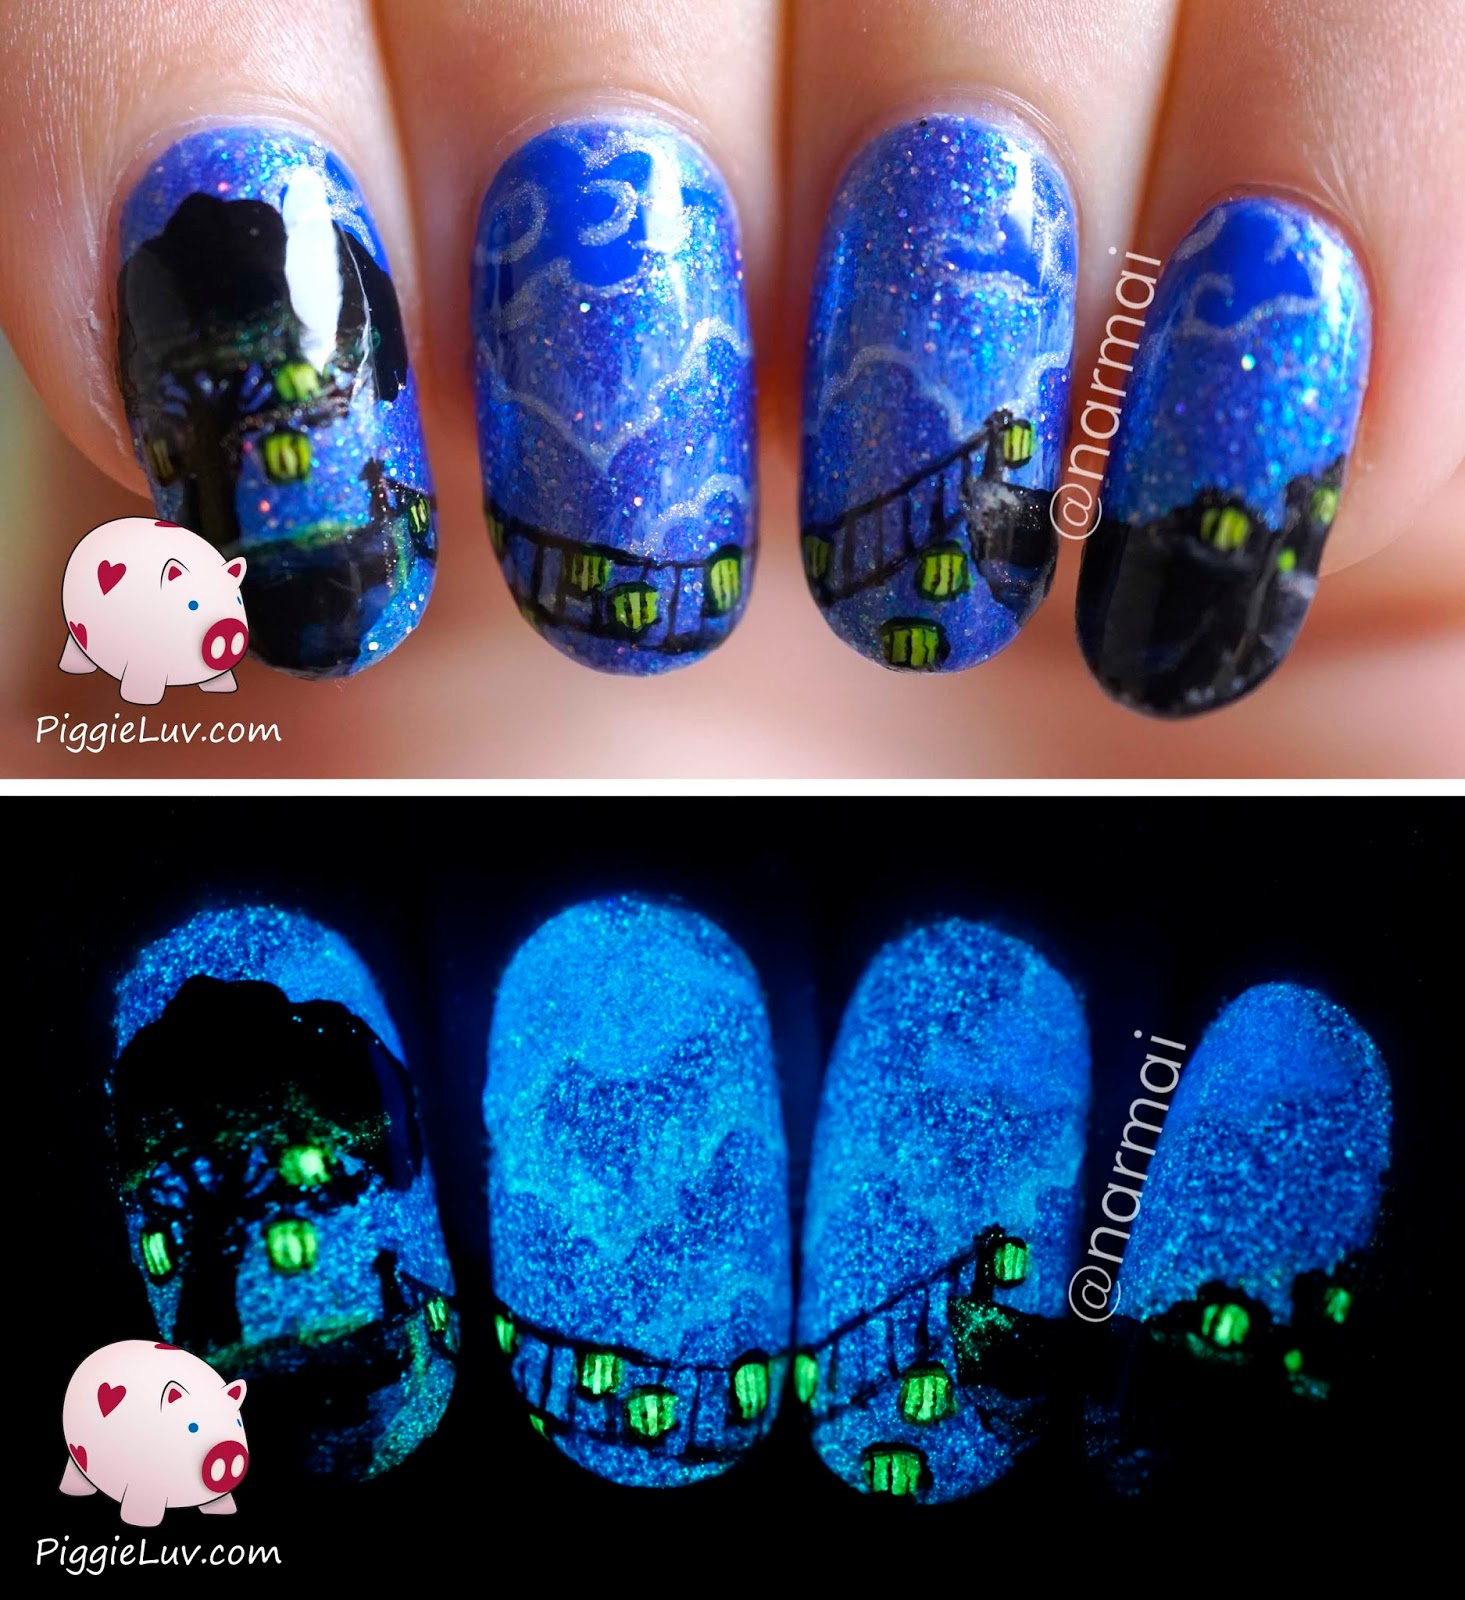 Piggieluv Glow In The Dark Bridge Nail Art Painted With Polish